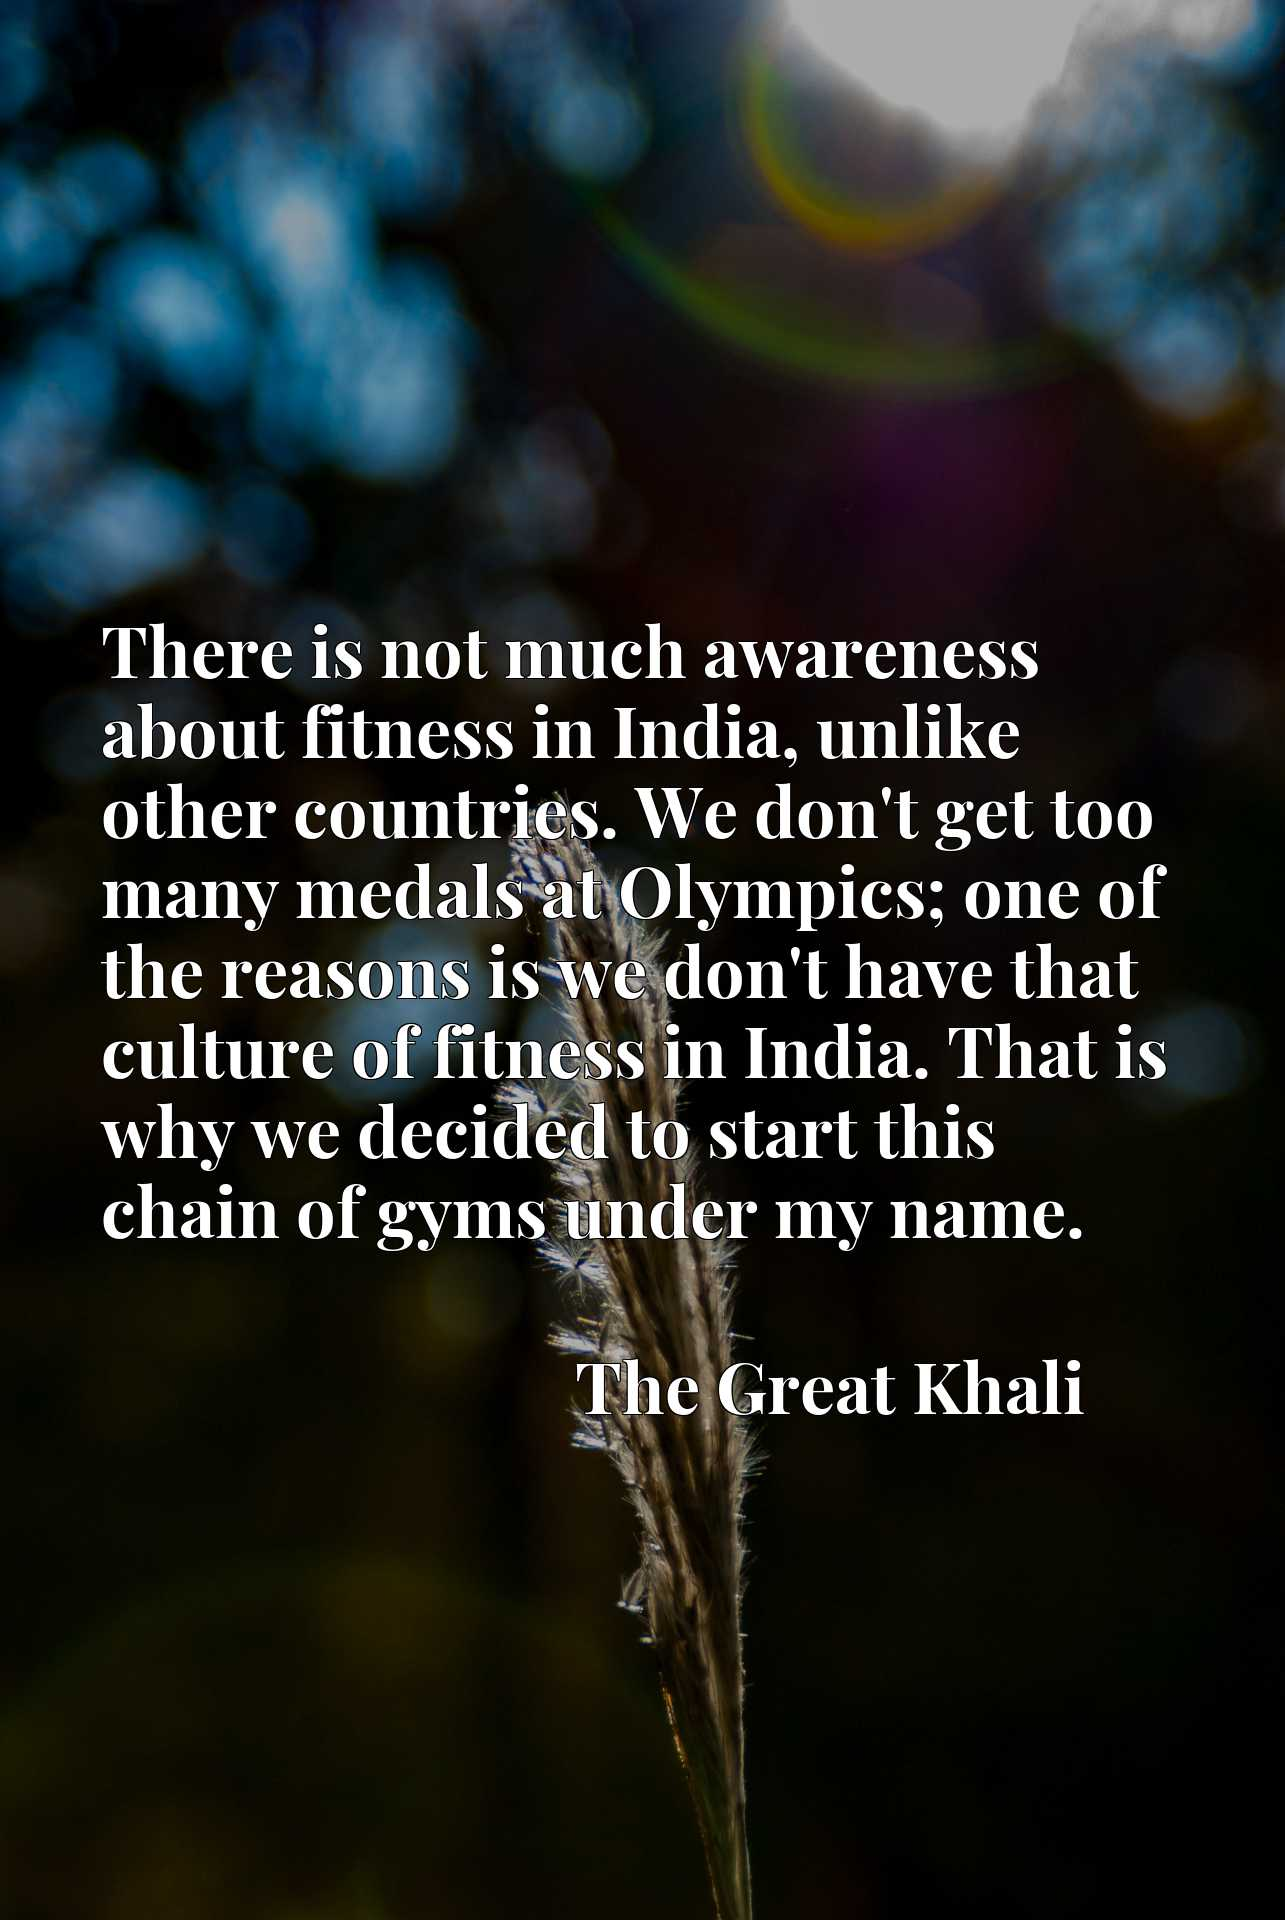 There is not much awareness about fitness in India, unlike other countries. We don't get too many medals at Olympics; one of the reasons is we don't have that culture of fitness in India. That is why we decided to start this chain of gyms under my name.